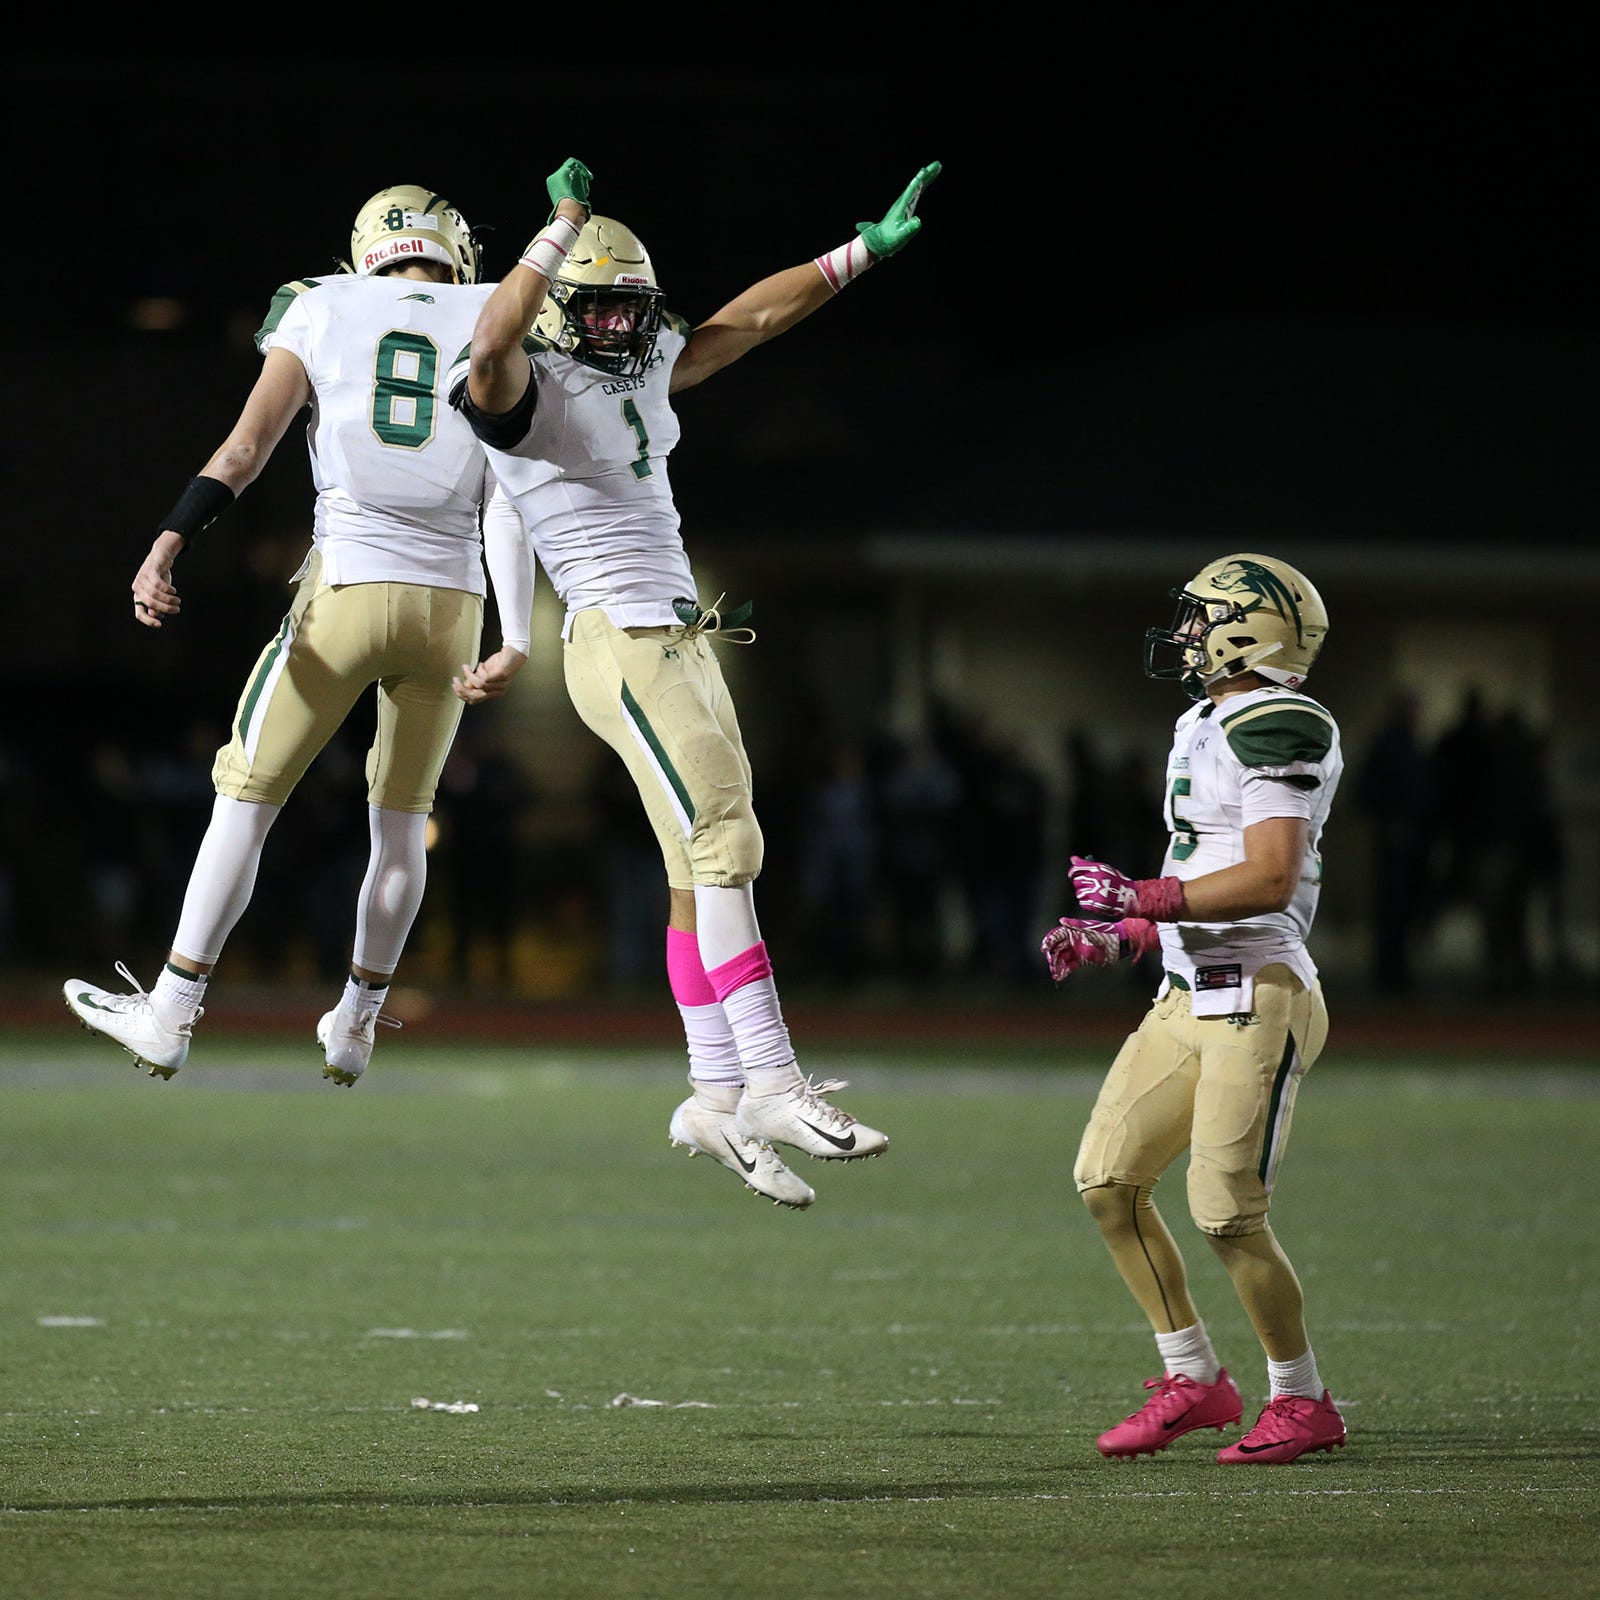 NJ football: Instant Classic! No. 1 Red Bank Catholic holds on to beat No. 2 Rumson, 14-13